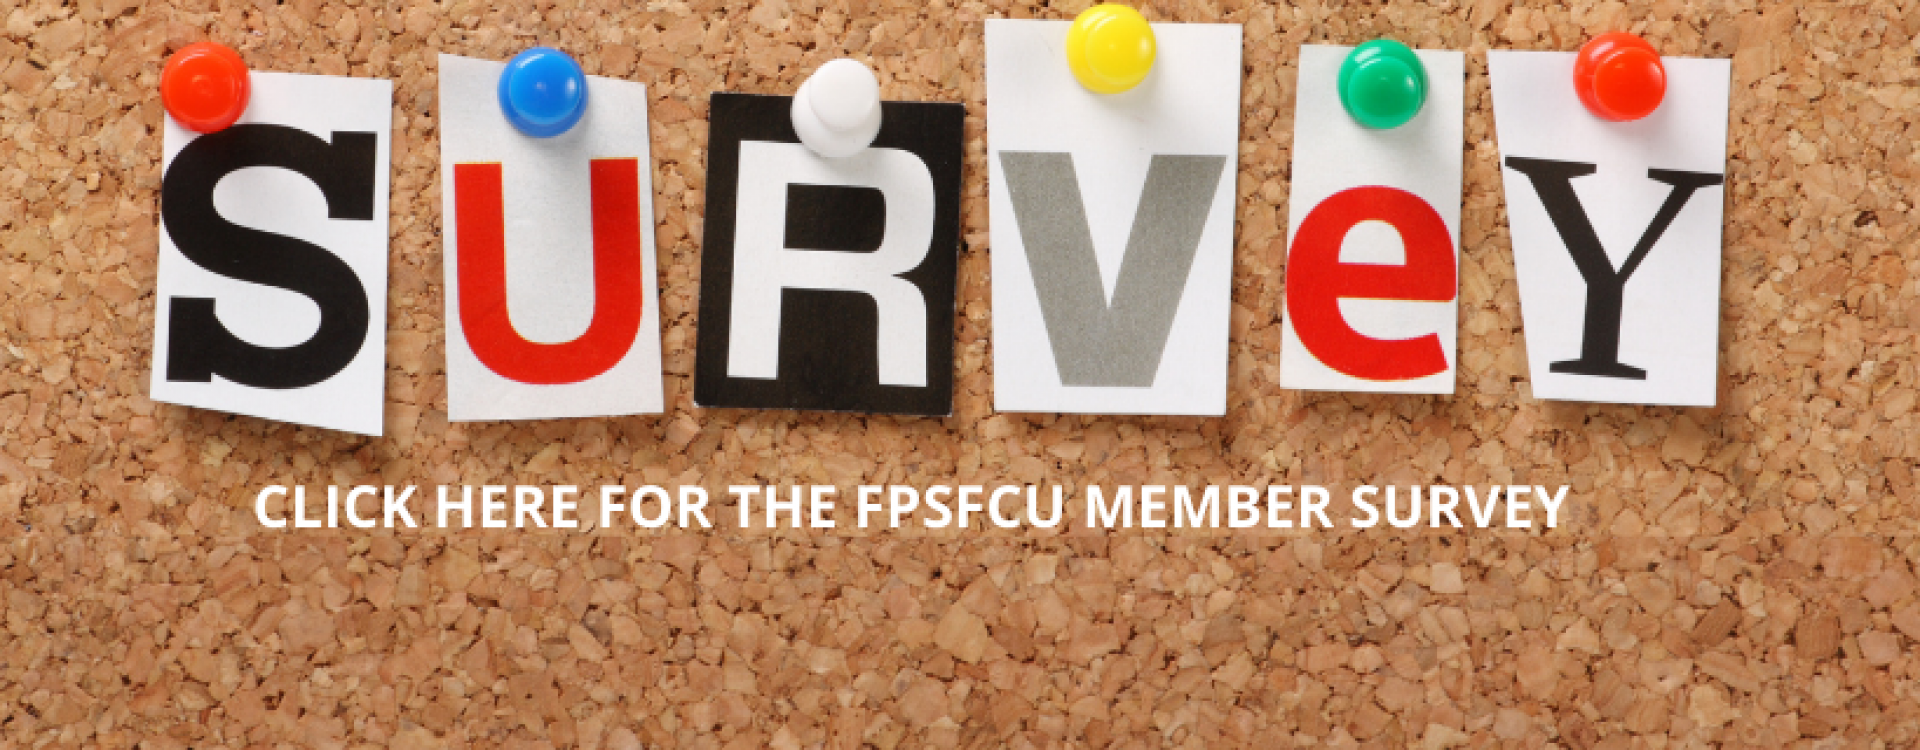 Click here for the FPSFCU member survey!